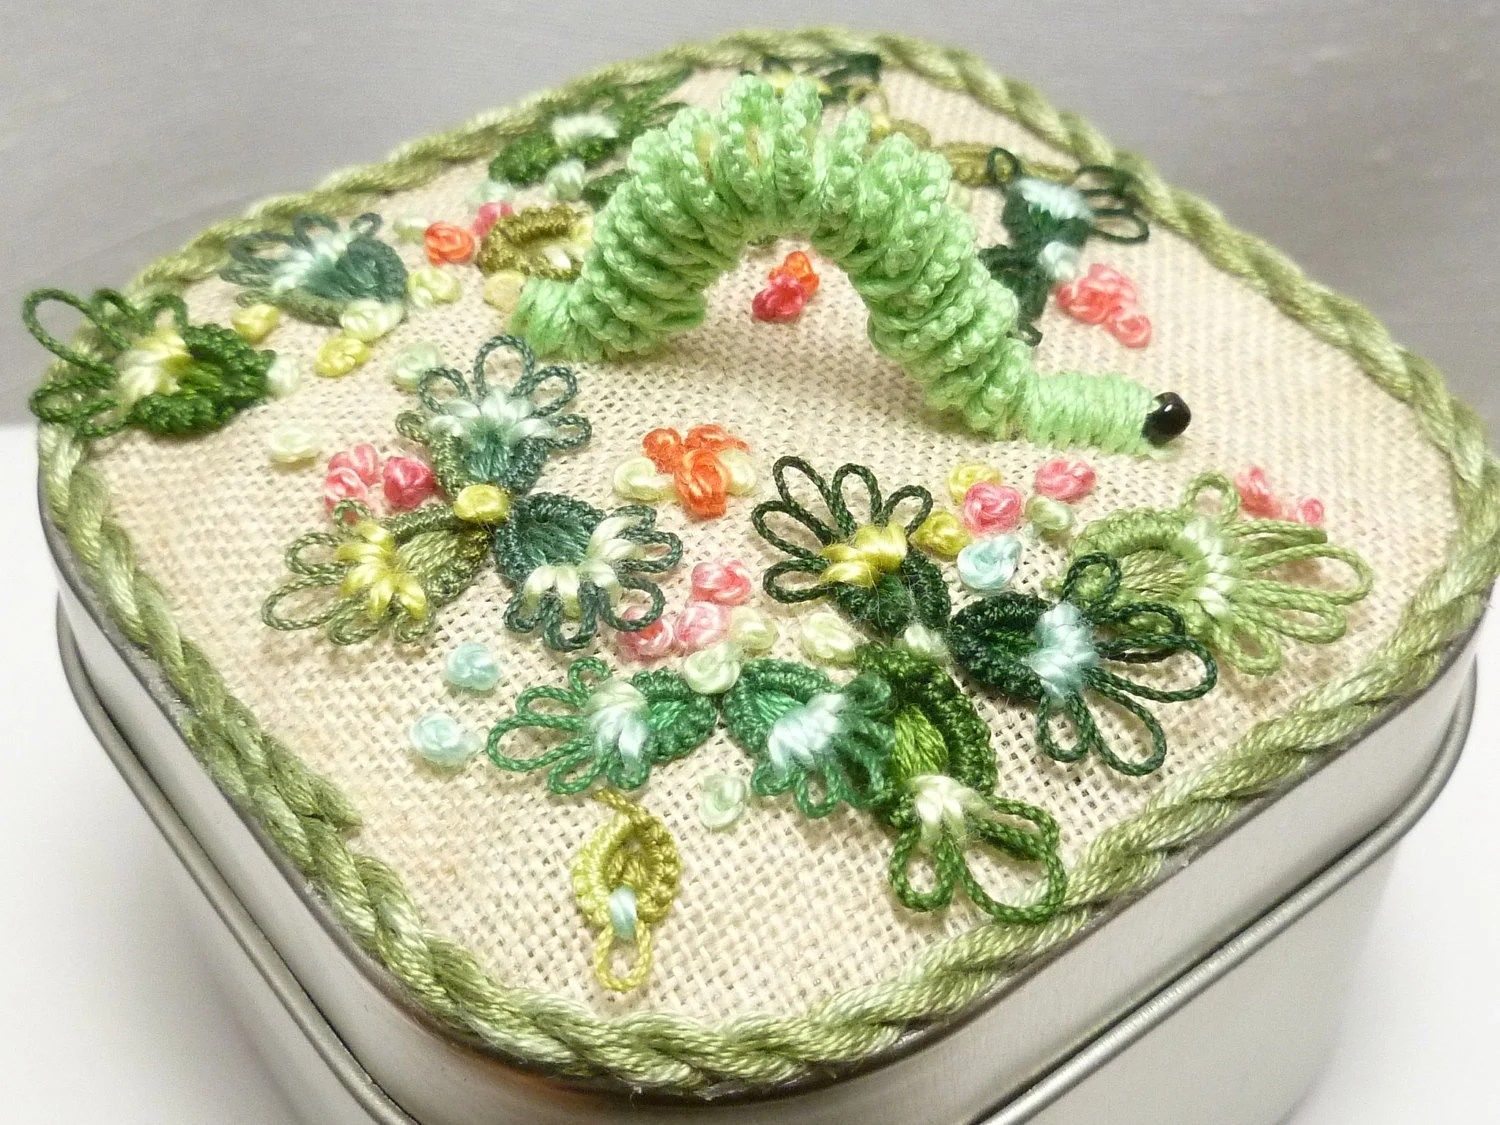 Tatted Fiber Art Catterpillar Inchworm Garden Box -Inch by Inch